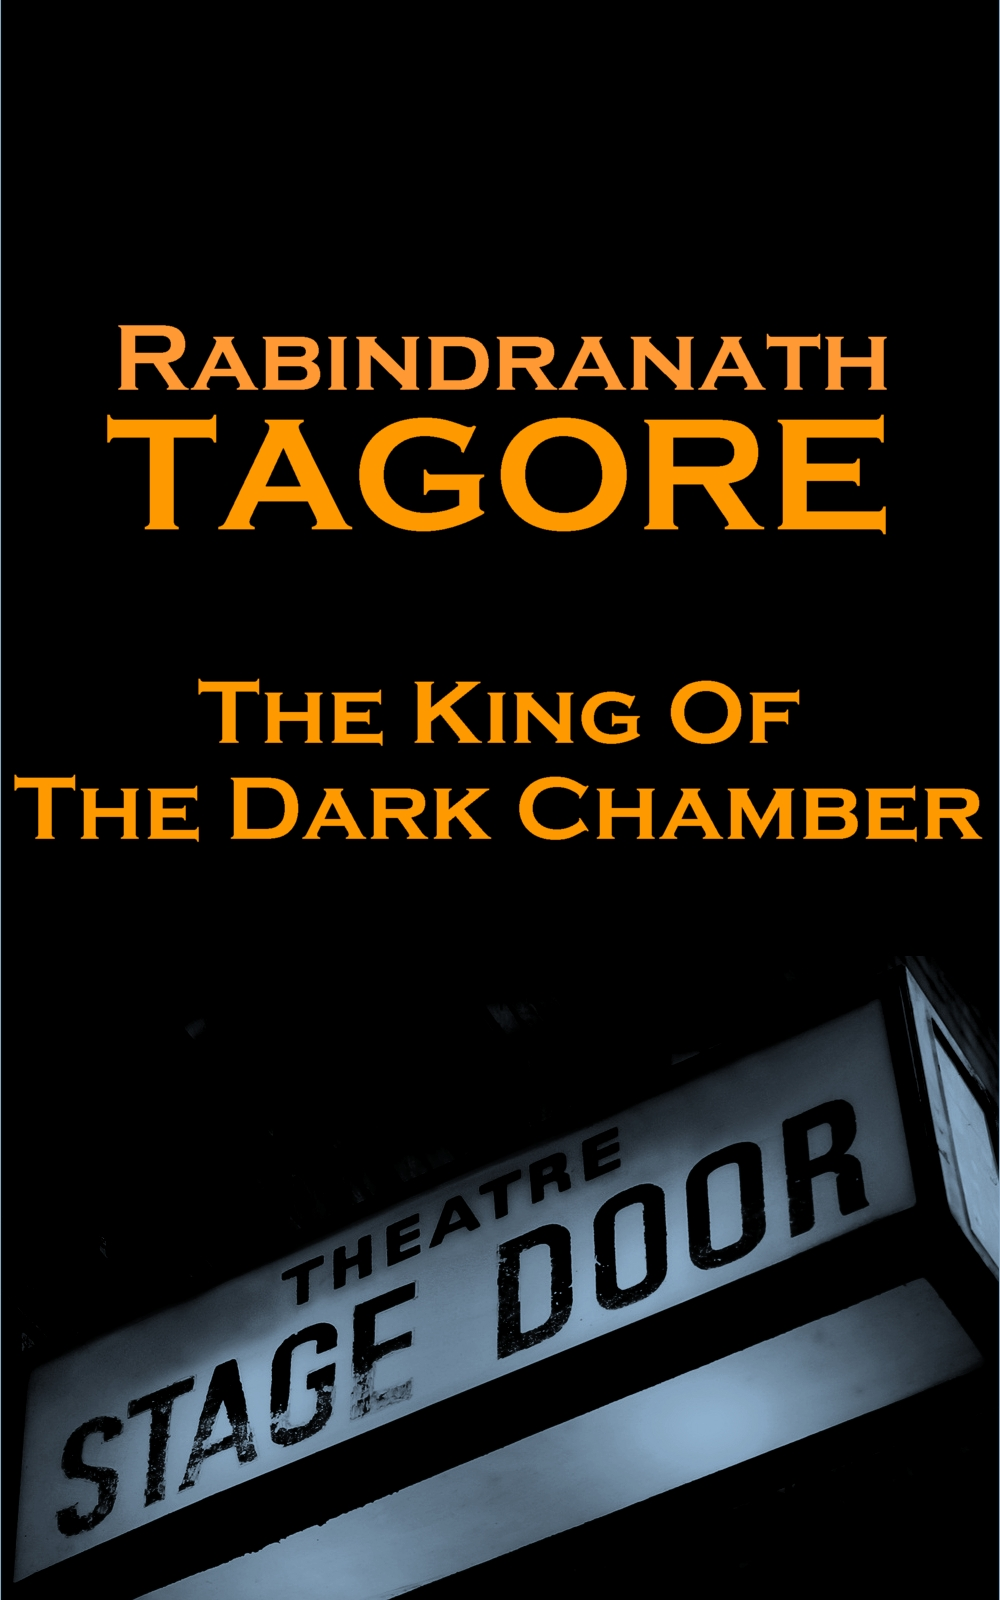 Rabindranath Tagore - The King Of The Dark Chamber By: Rabindranath Tagore